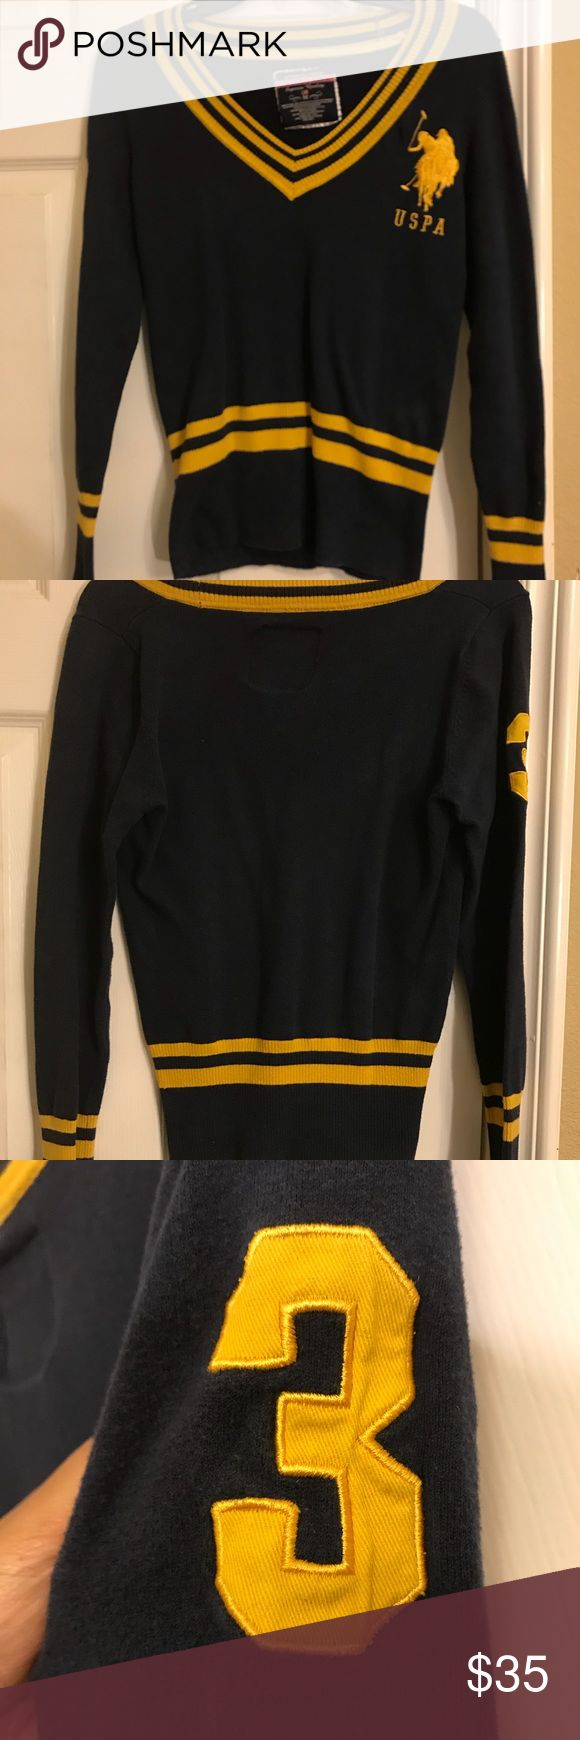 Navy Blue and Gold US POLO Association pullover Navy blue and gold US POLO Association pullover. Medium. Fitting and soft material. 80% cotton. 17% Nylon. 8% Spandex. U.S. Polo Assn. Tops Sweatshirts & Hoodies